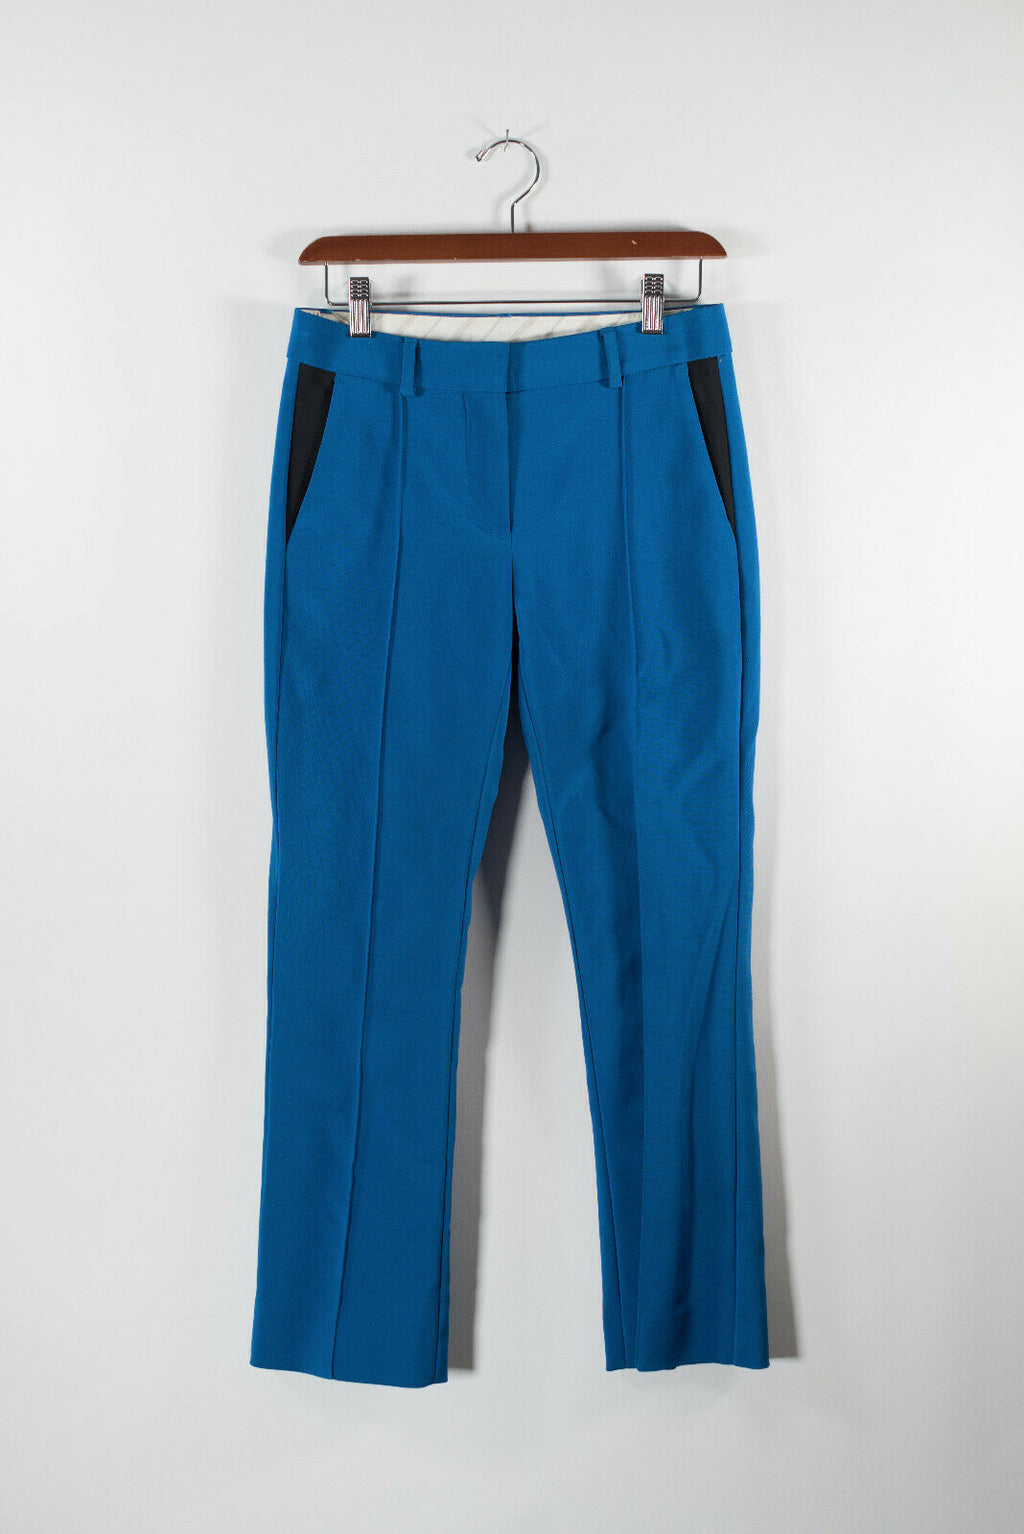 Sportmax Code Womens Size 2 XS Blue Pants Low Rise 2 Tone Ankle Pleated Trousers